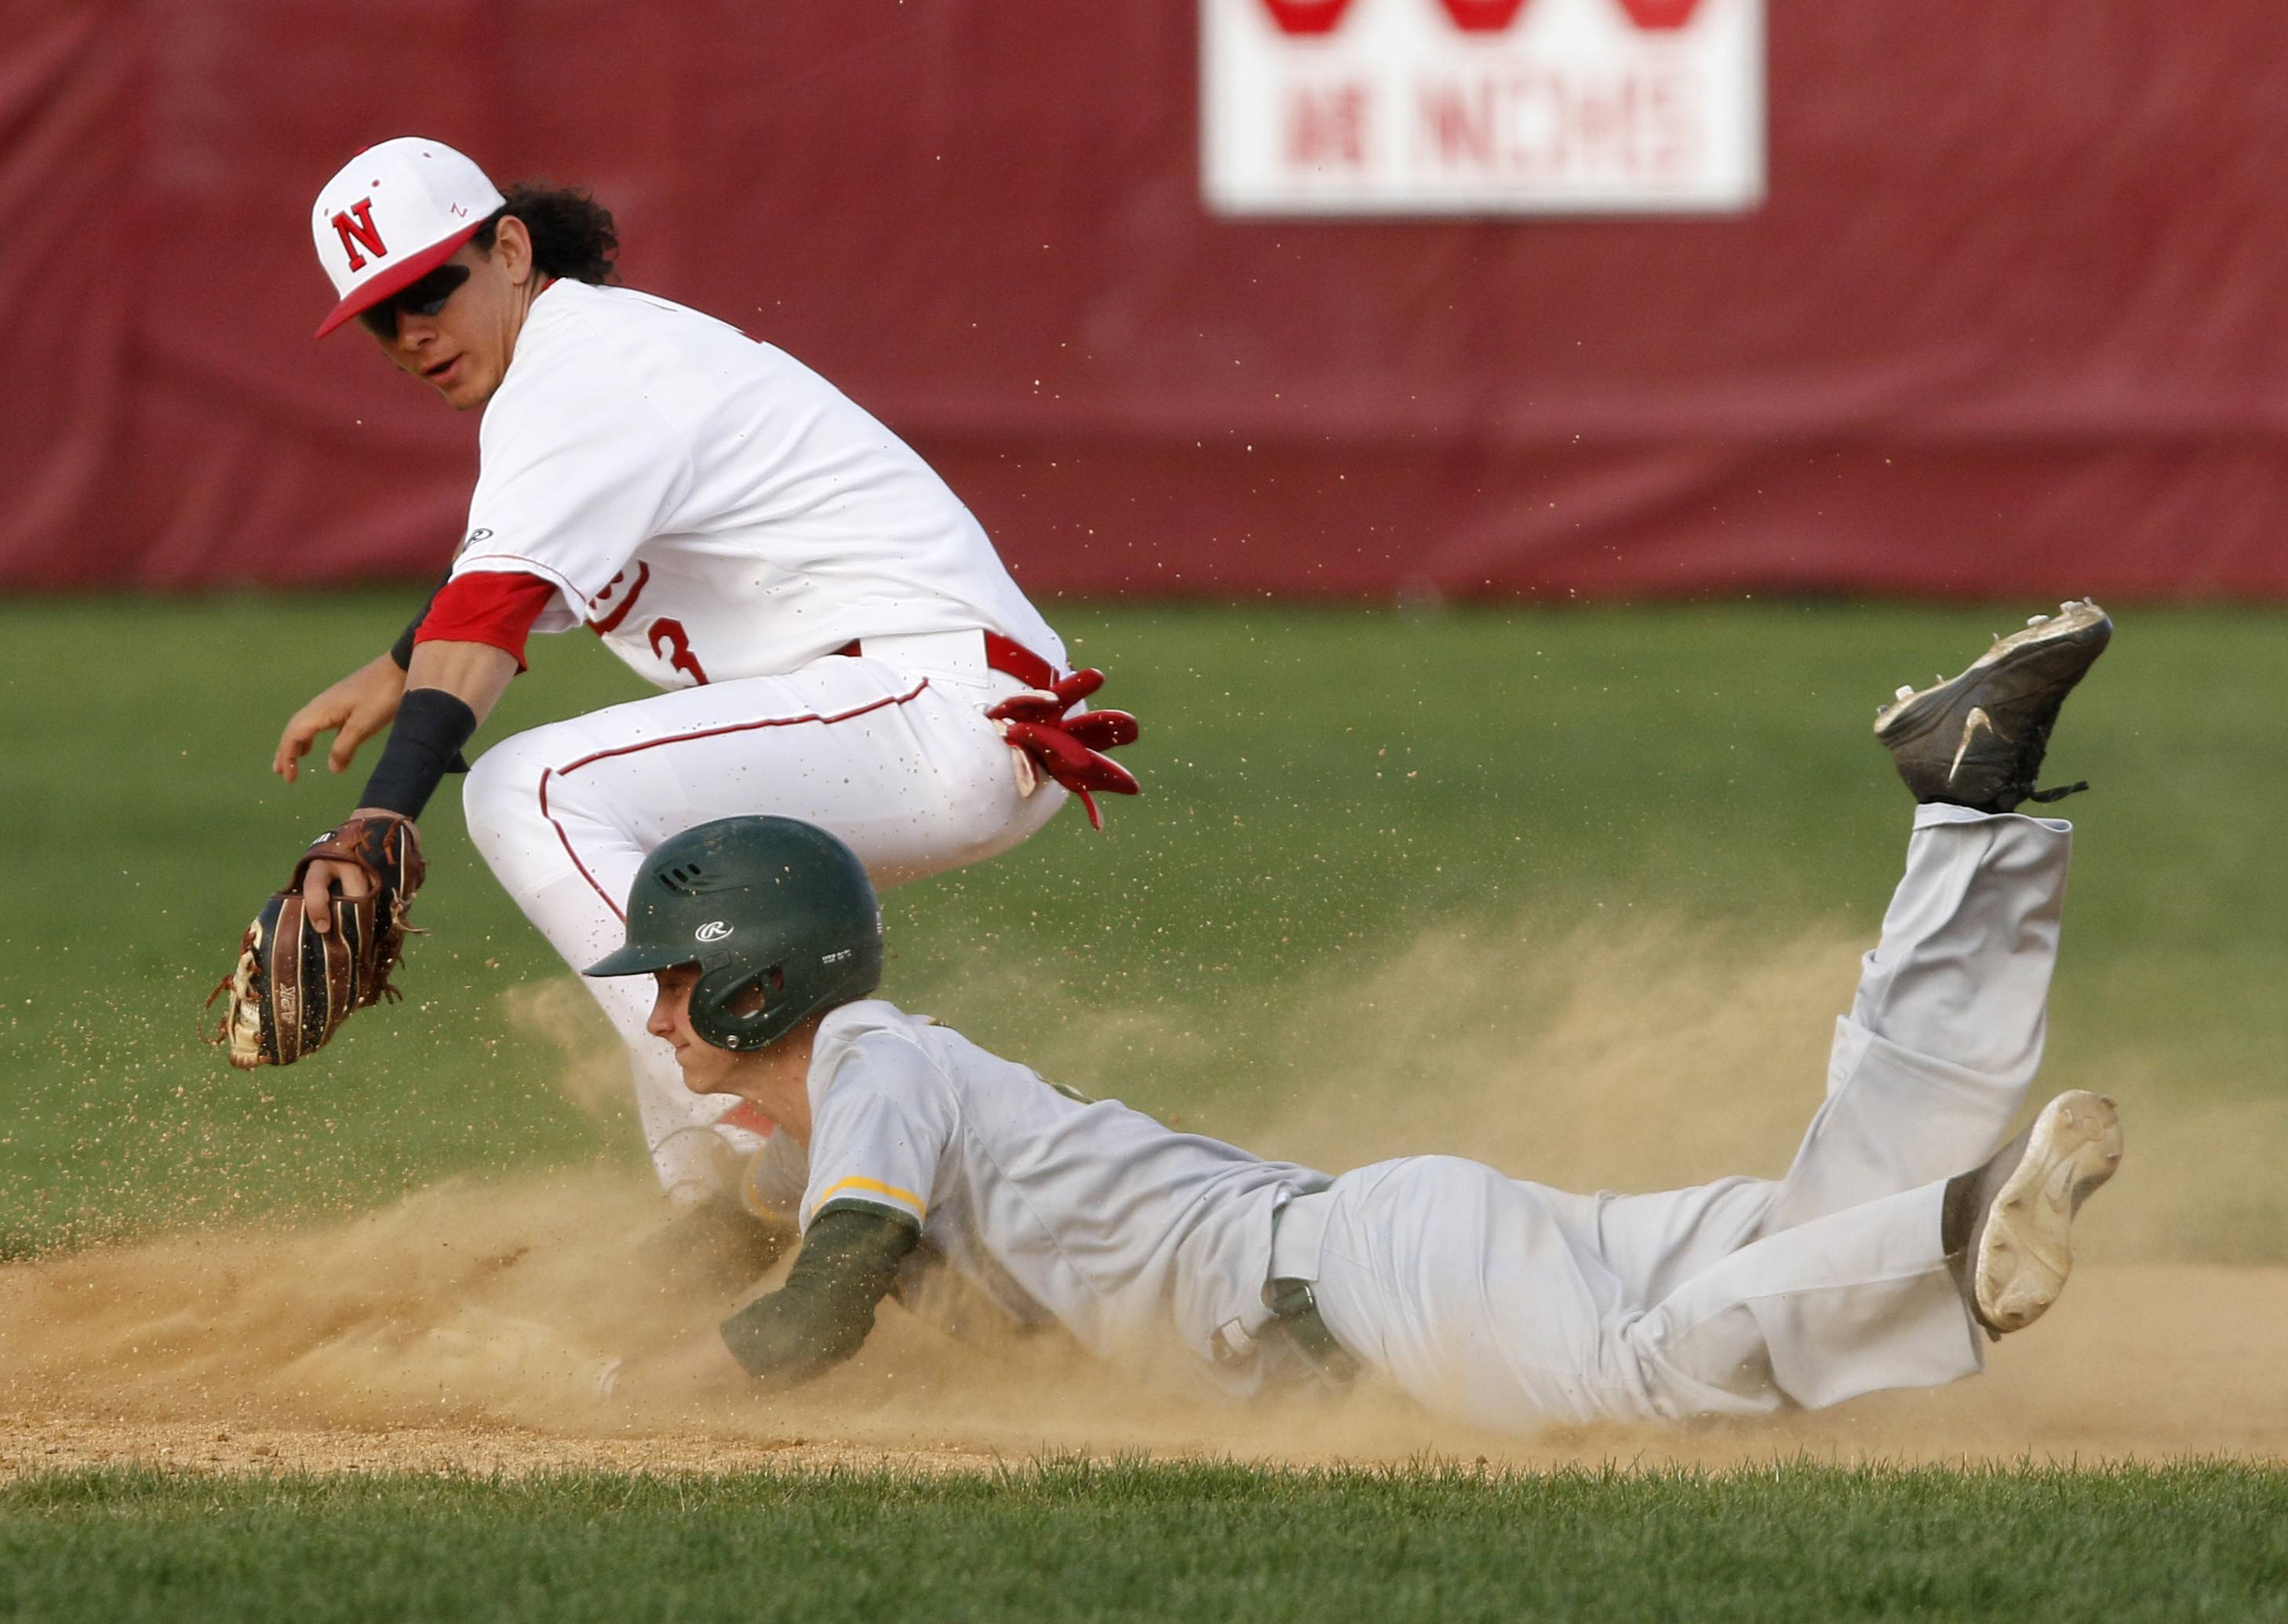 Waubonsie Valley's Eric Esch slides safely into second base under the tag of Naperville Central's Gabe Soria.